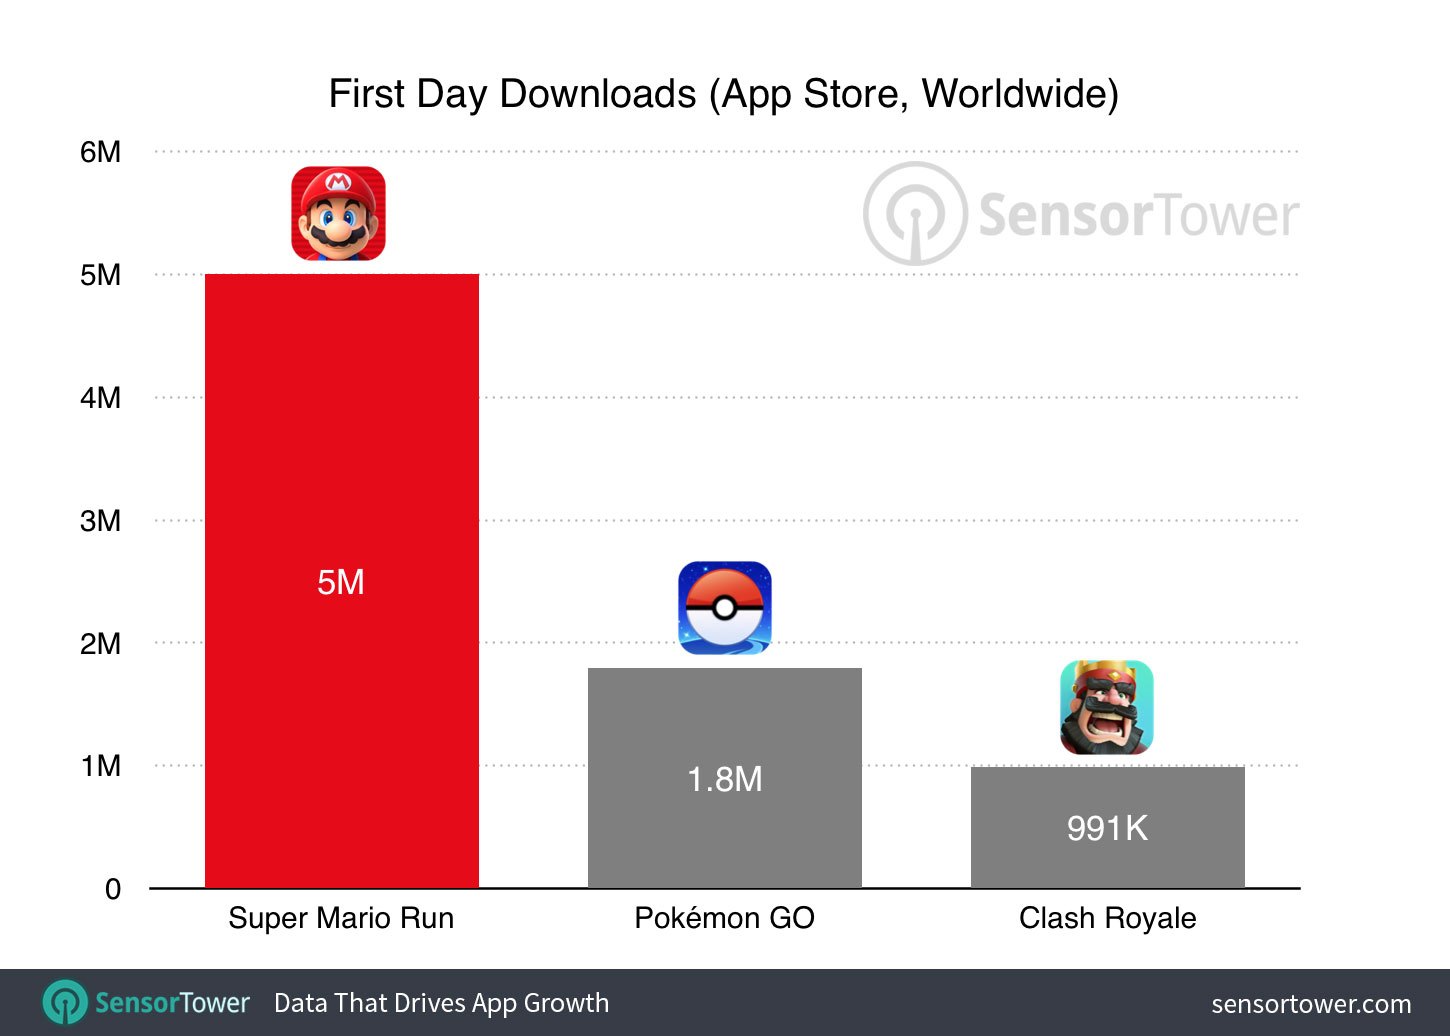 super-mario-run-first-day-downloads